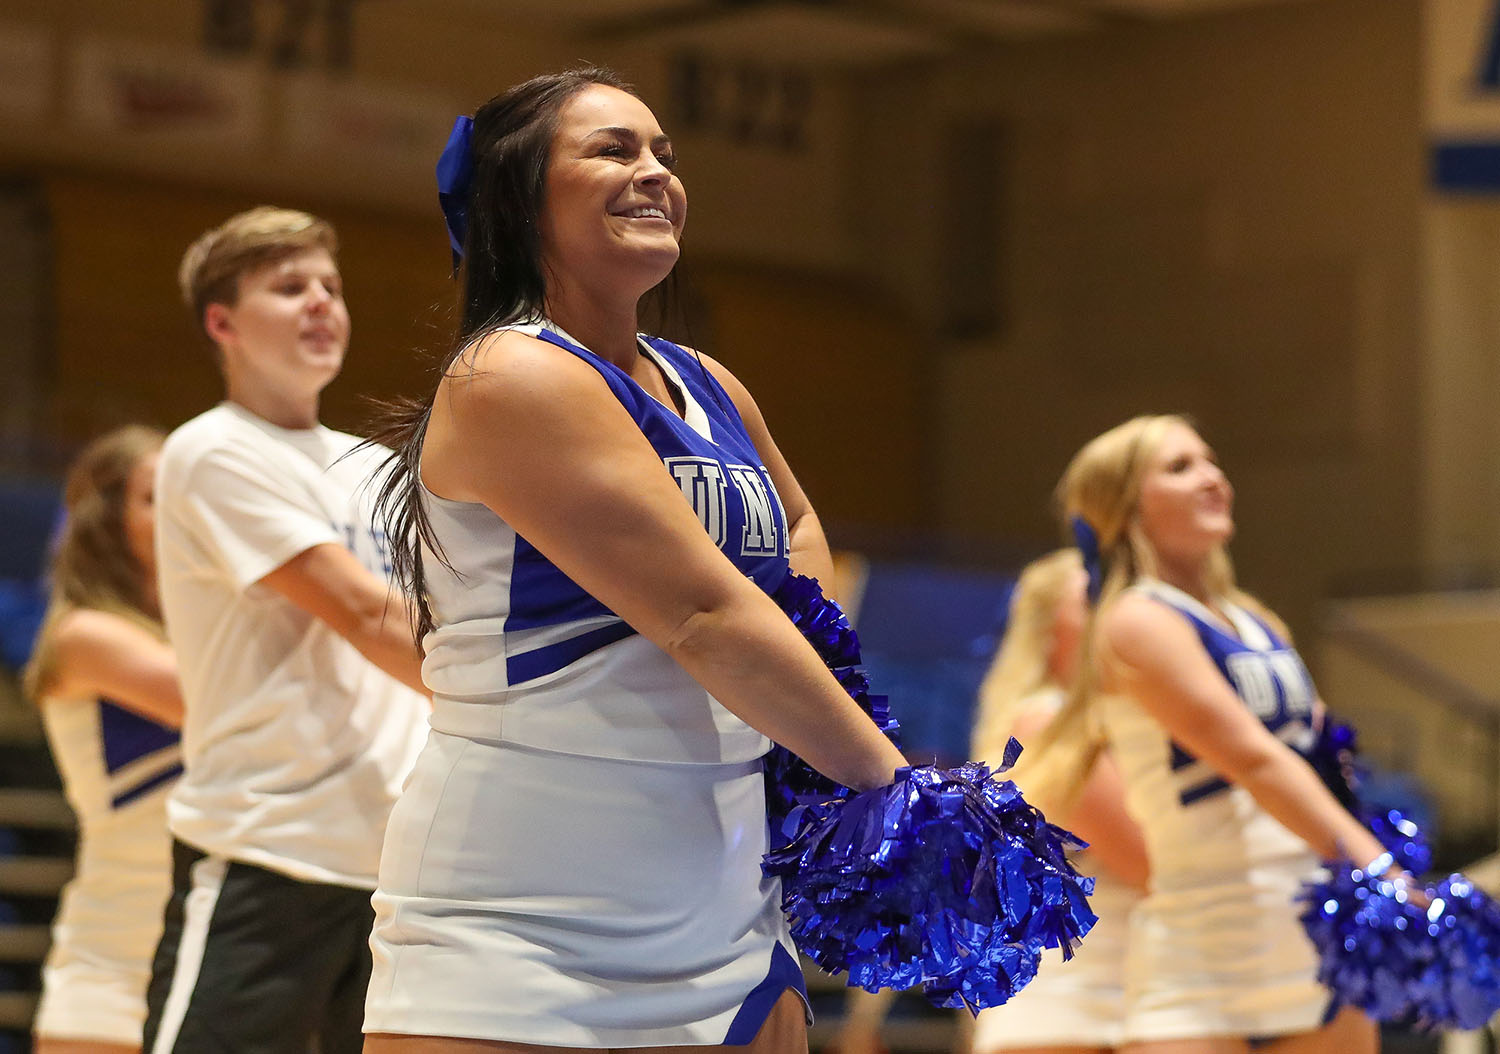 Fayth Jackson is active at UNK through the Loper cheer team and organizations such as the Gamma Phi Beta sorority and Student-Athlete Advisory Committee.